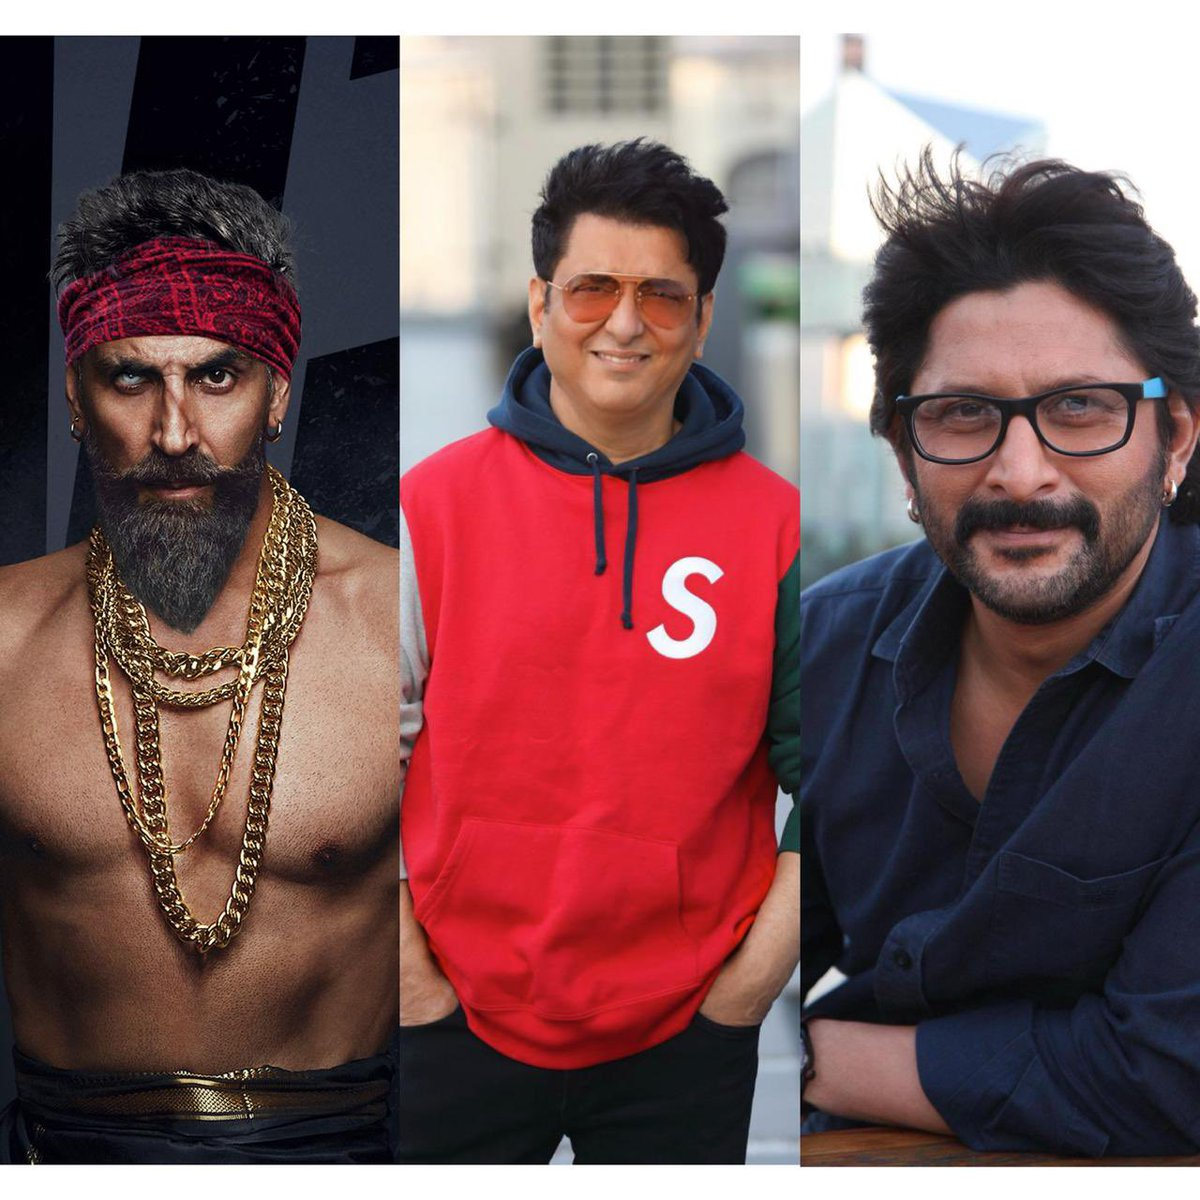 Can't wait to watch @akshaykumar paaji with @ArshadWarsi for the 1st time for #SajidNadiadwala's #BachhanPandey which also co stars @kritisanon. Shoot commenced on Jan 21 in Jaisalmer.  #SidK @WardaNadiadwala @NGEMovies @farhad_samji #AkshayKumar #KritiSanon #arshadwarsi